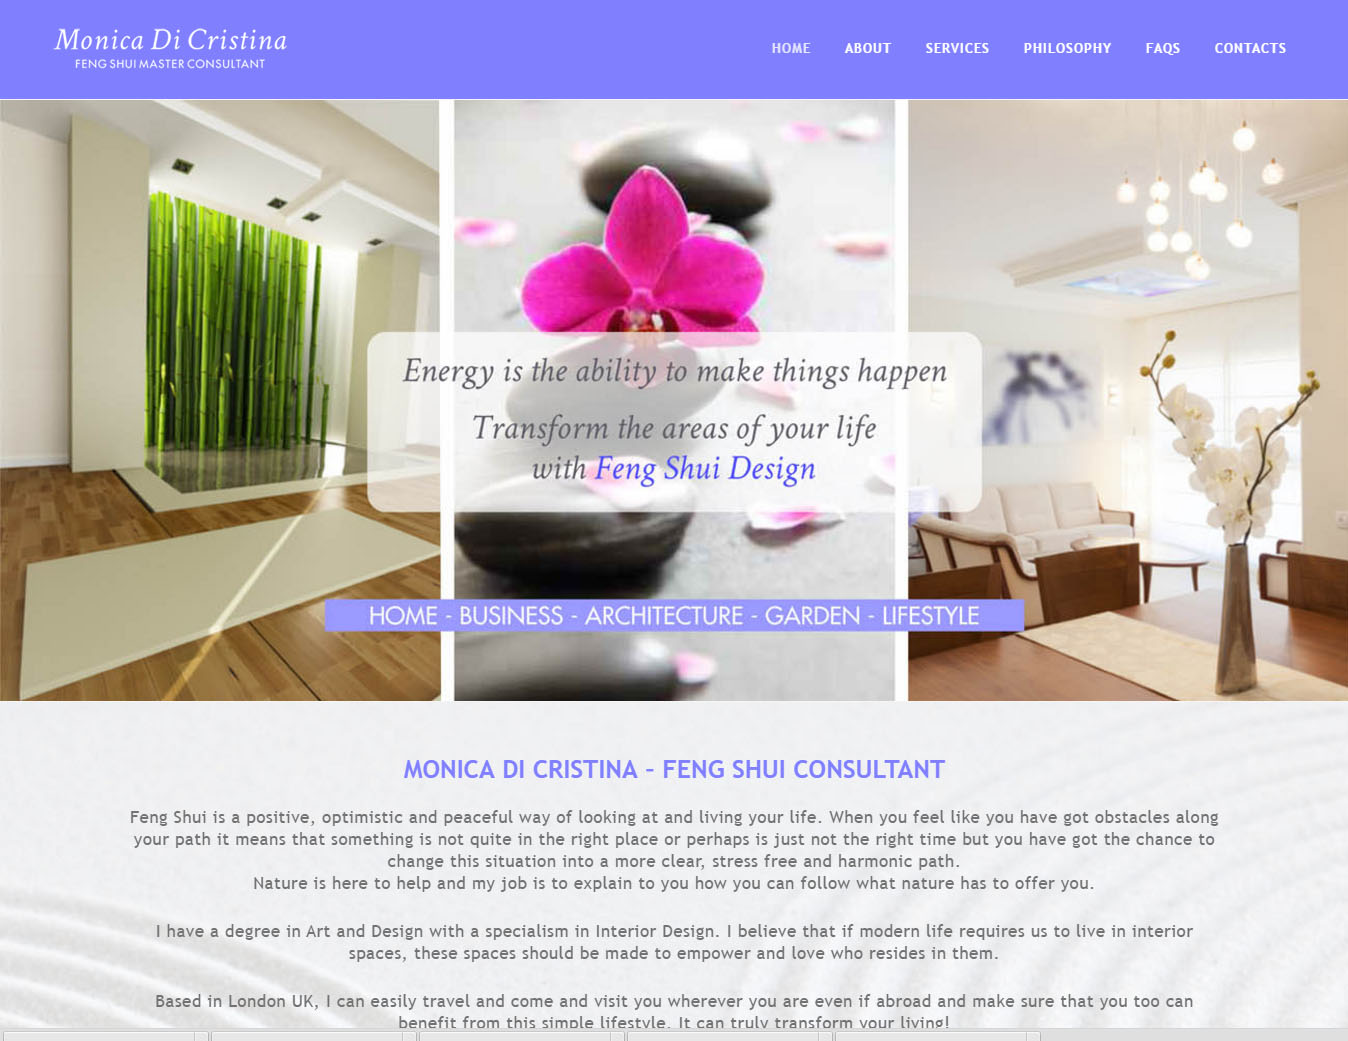 Monicadicristina website, design and devolopment in CMS by Marilooweb